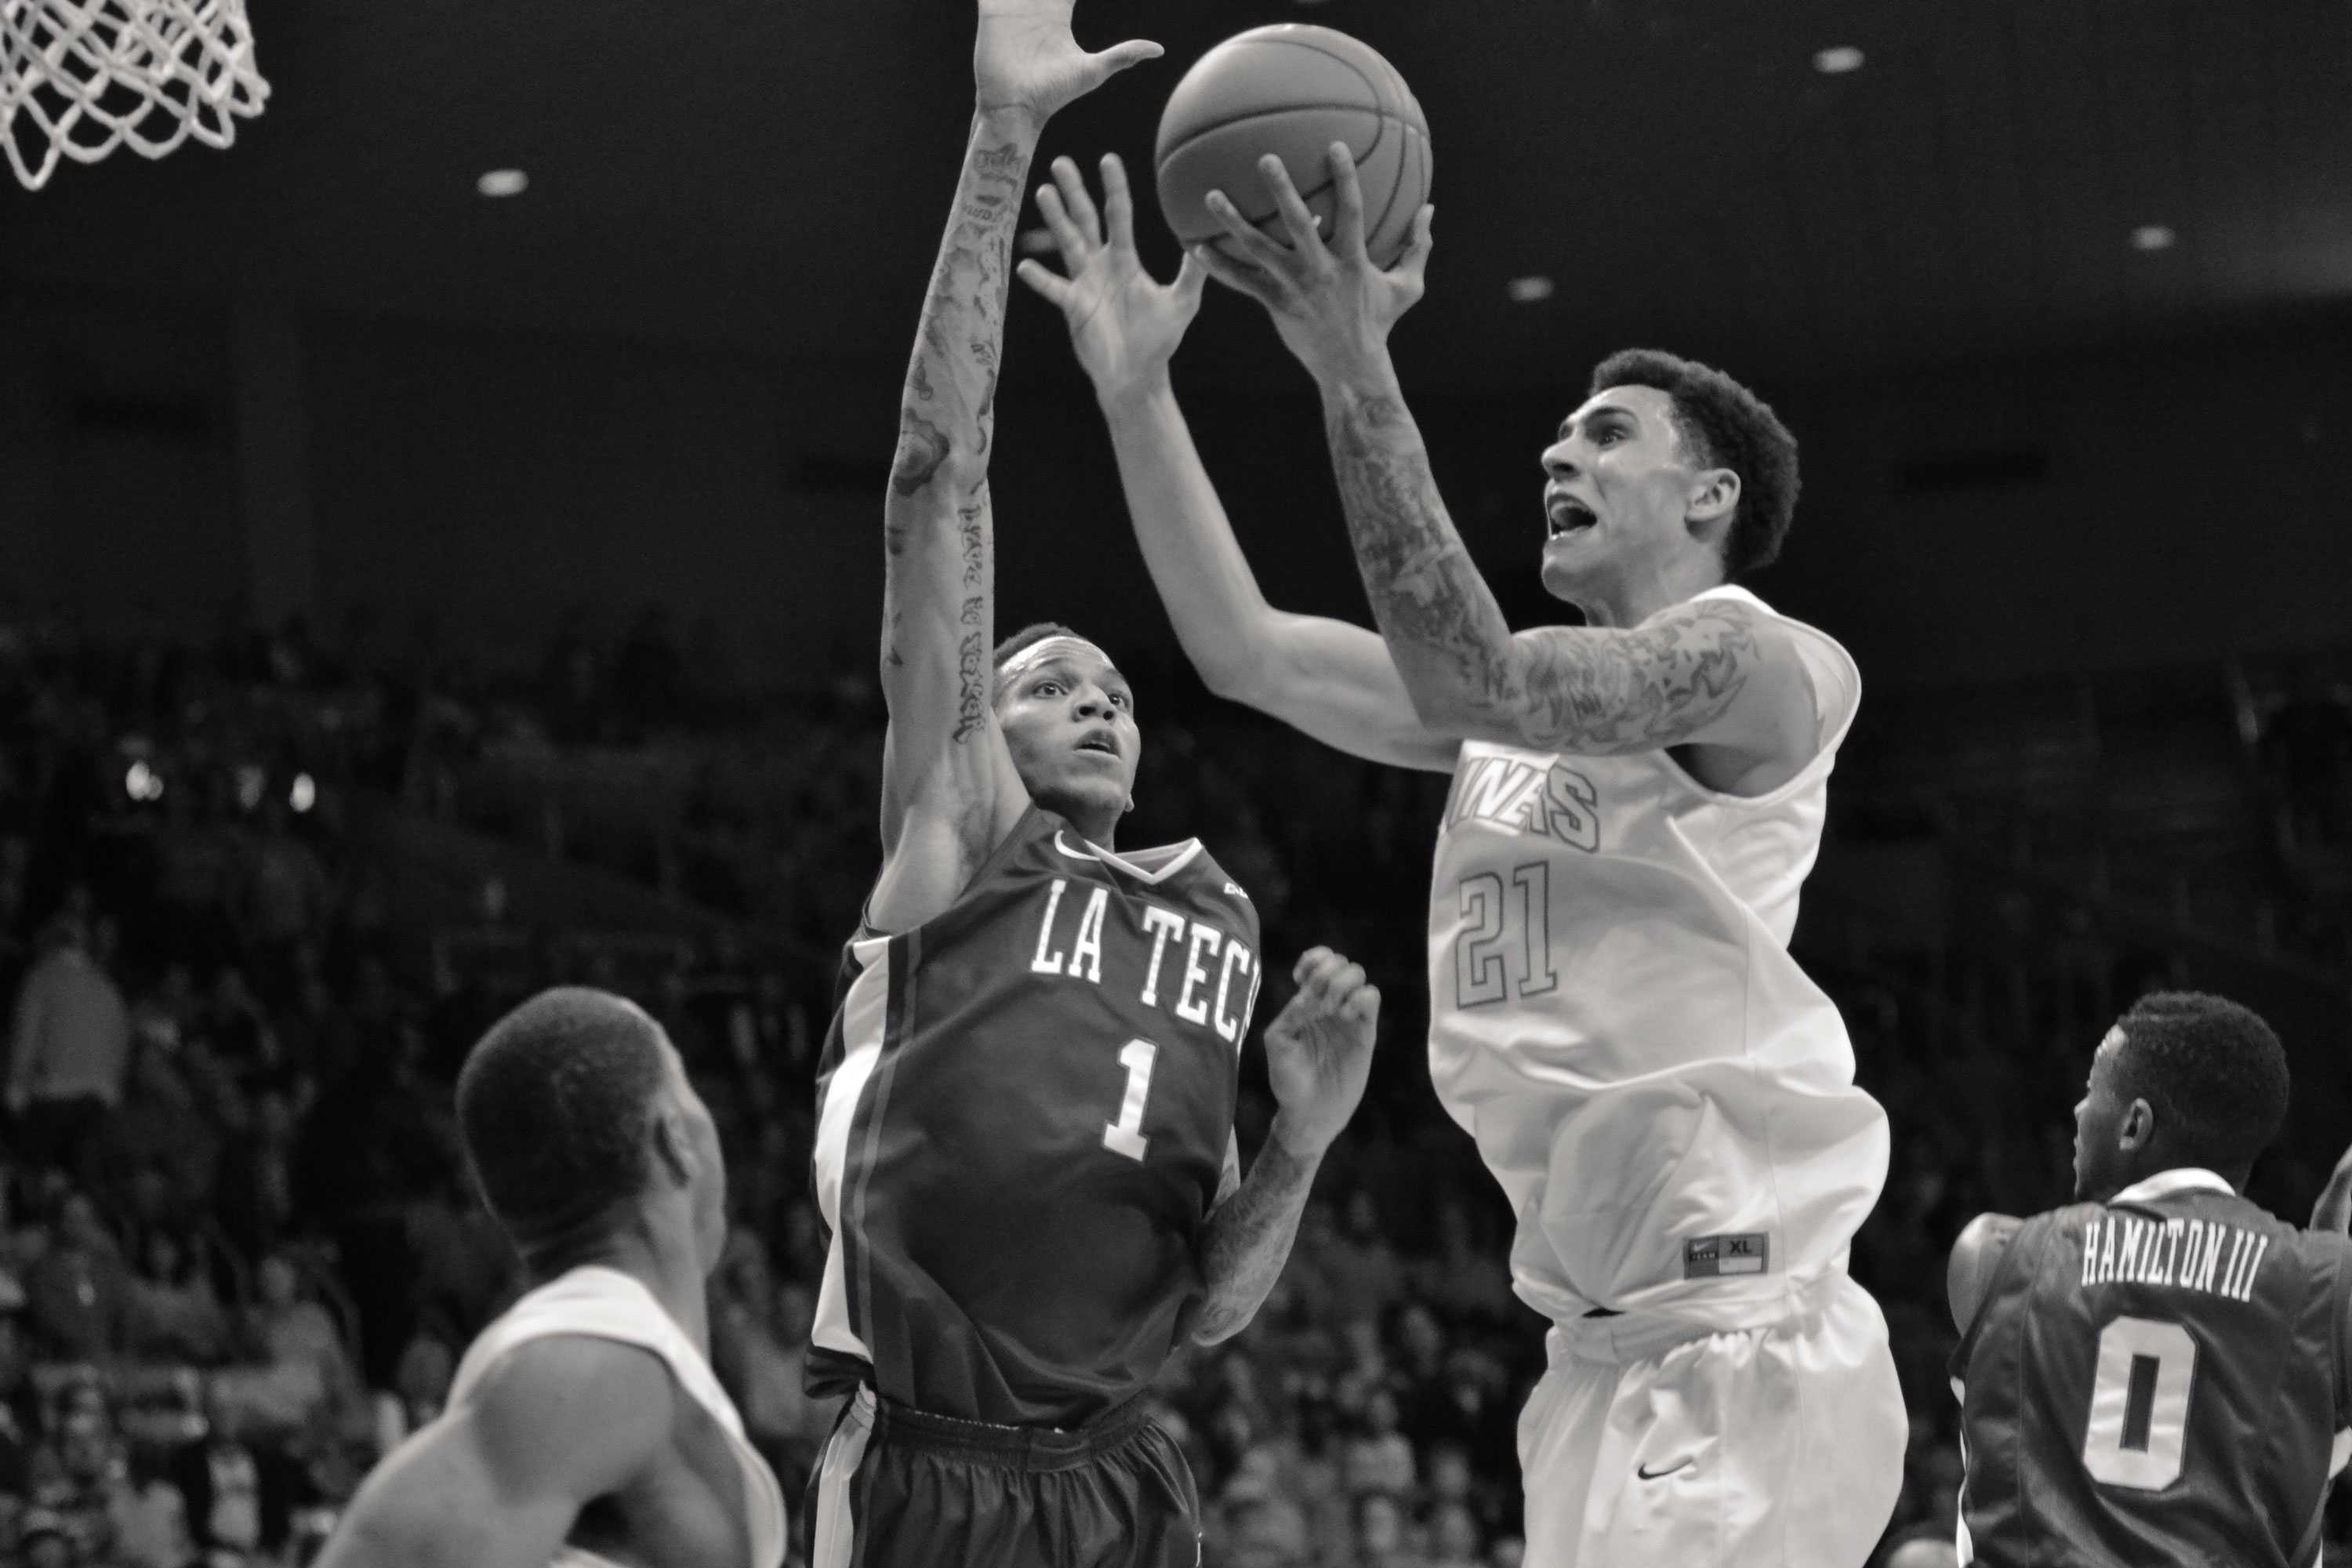 UTEP has won their last six conference games. They have won 11 of 12 games and are tied with Southern Miss in first place of conference.